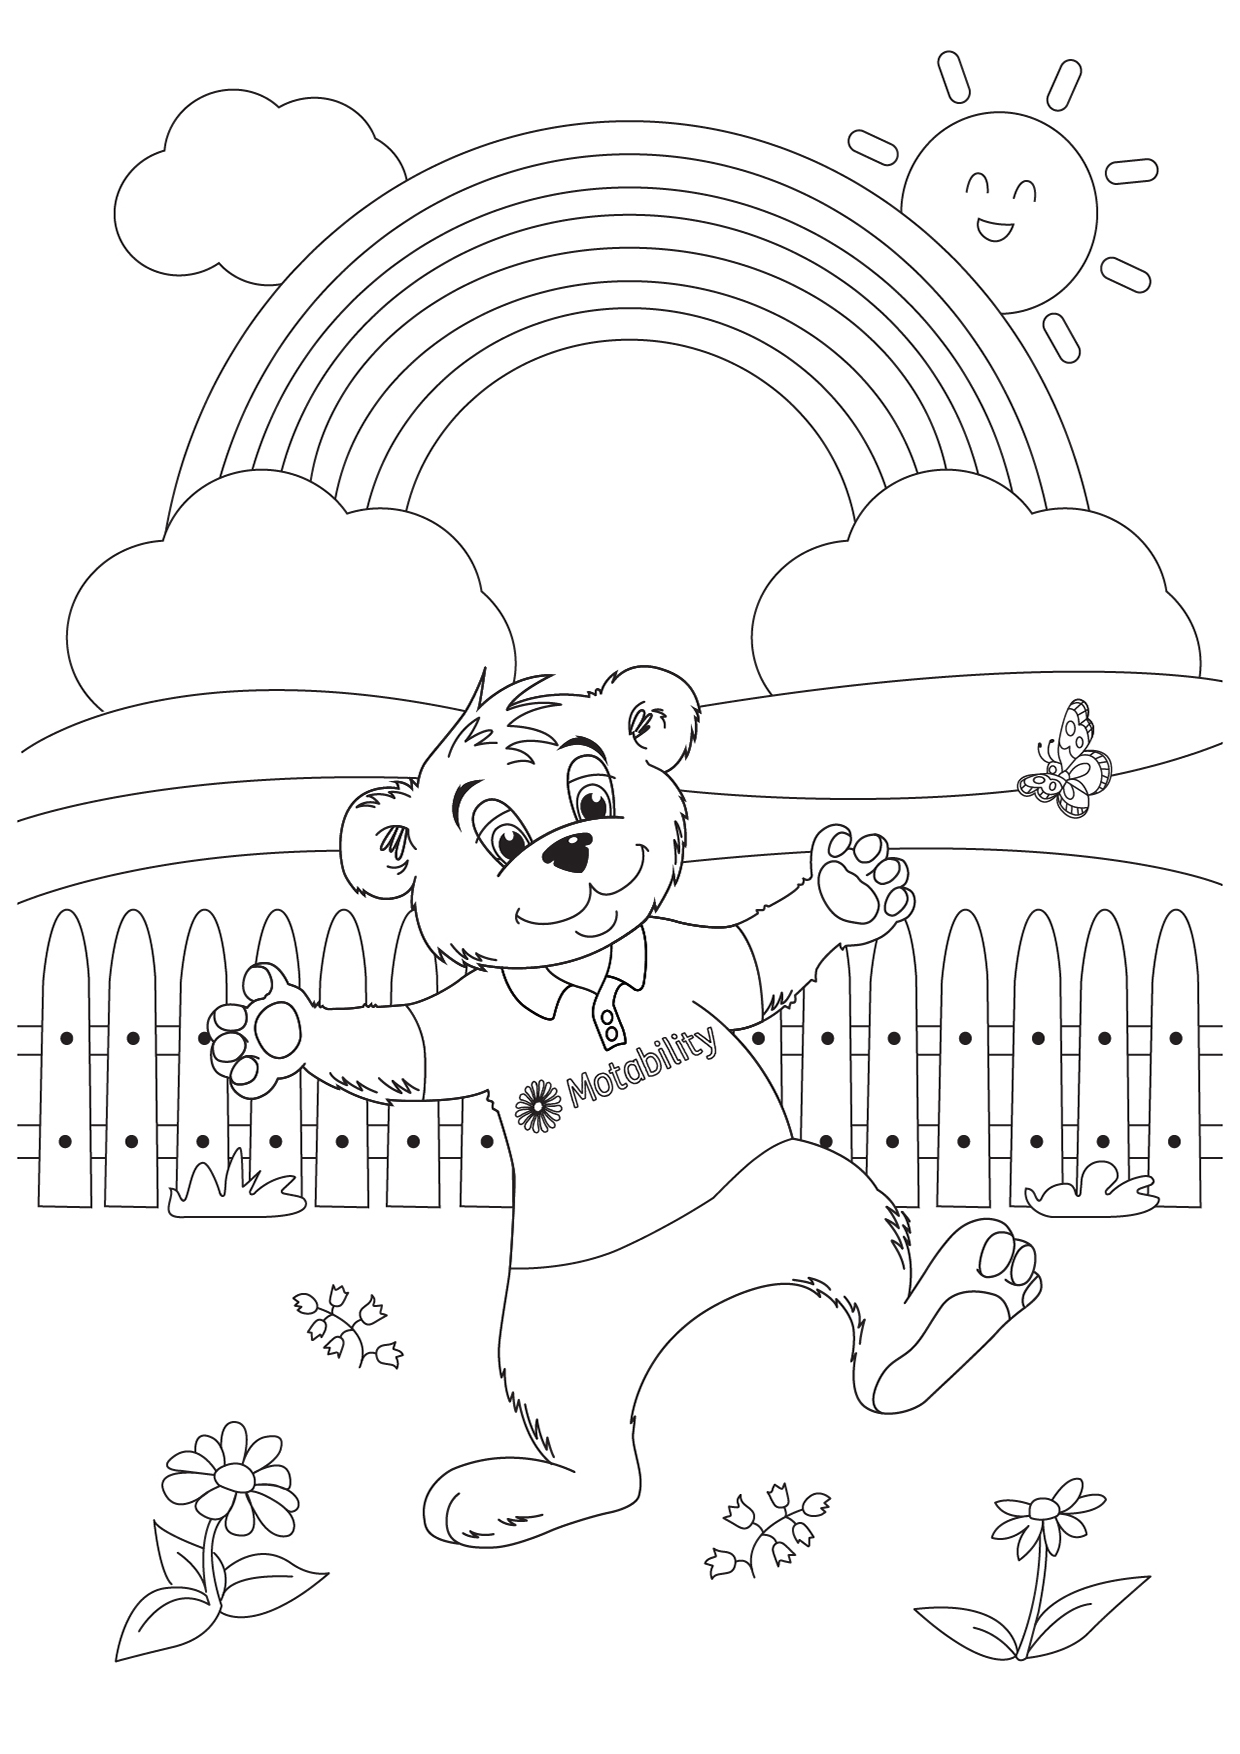 Billy the Bear Rainbow Colouring 150dpi.jpg